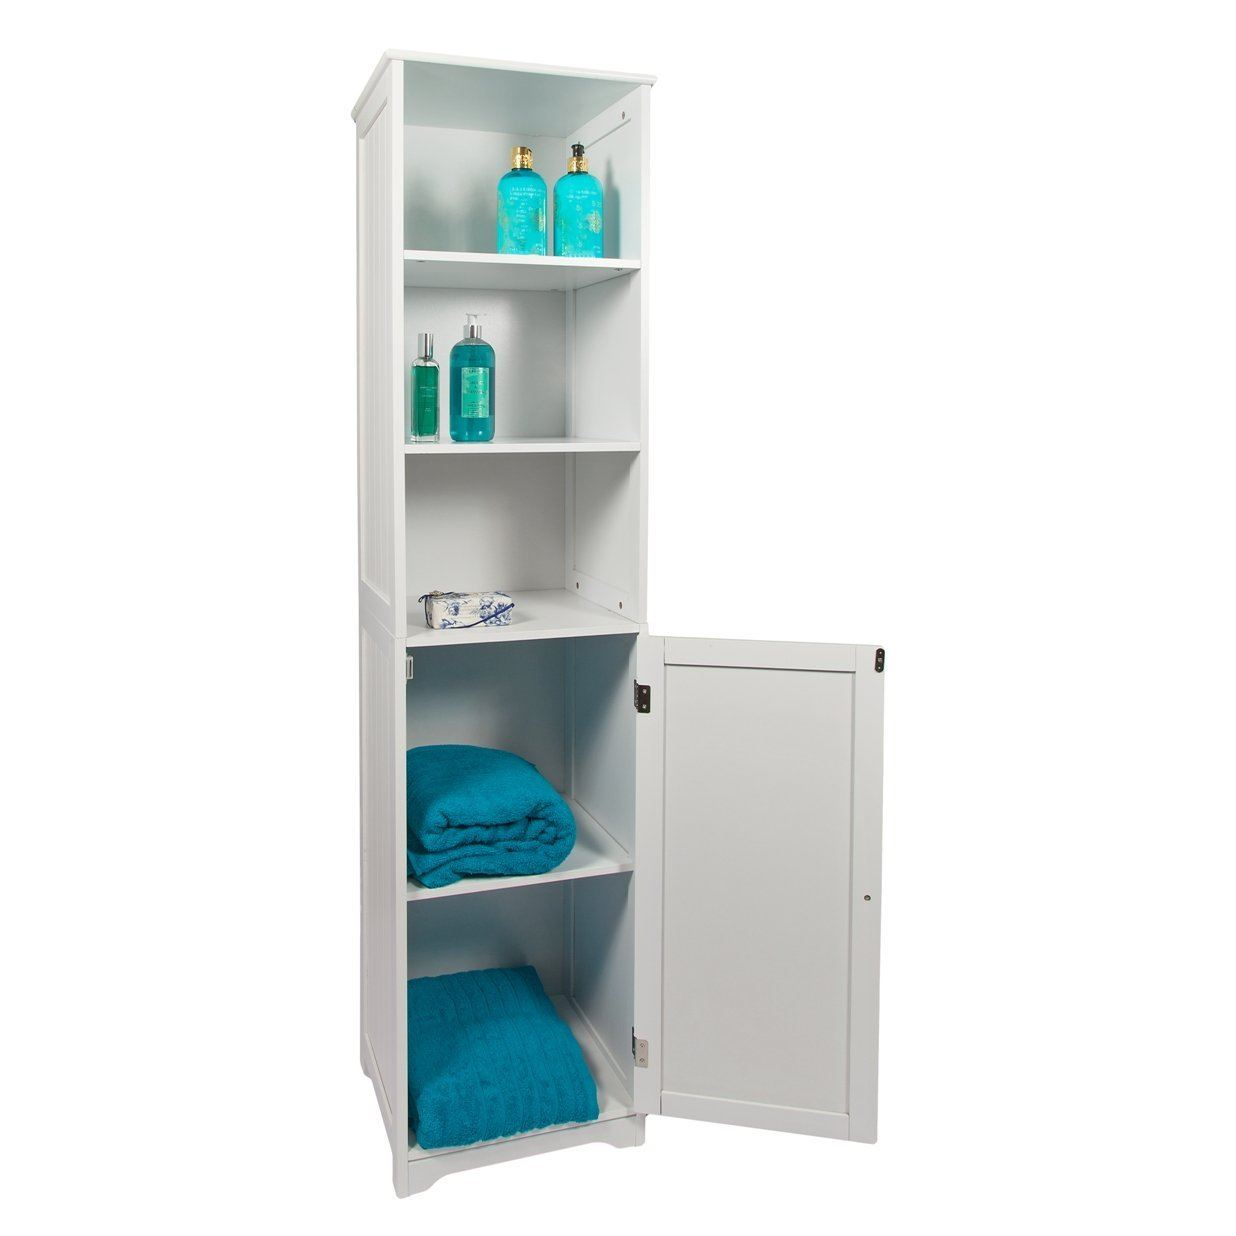 White Bathroom Furniture Storage Cupboard Cabinet Shelves: New White Wooden Bathroom Cabinet Shelf Furniture Cupboard